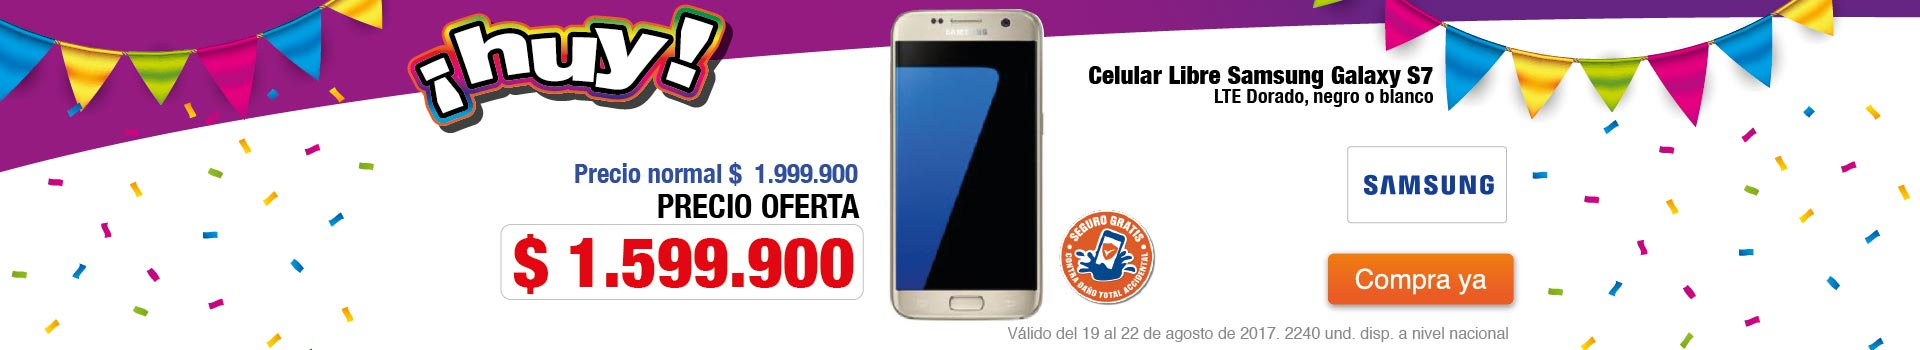 Cat AK-10-celulares-SAMSUNGS7-cat-agosto-19-22